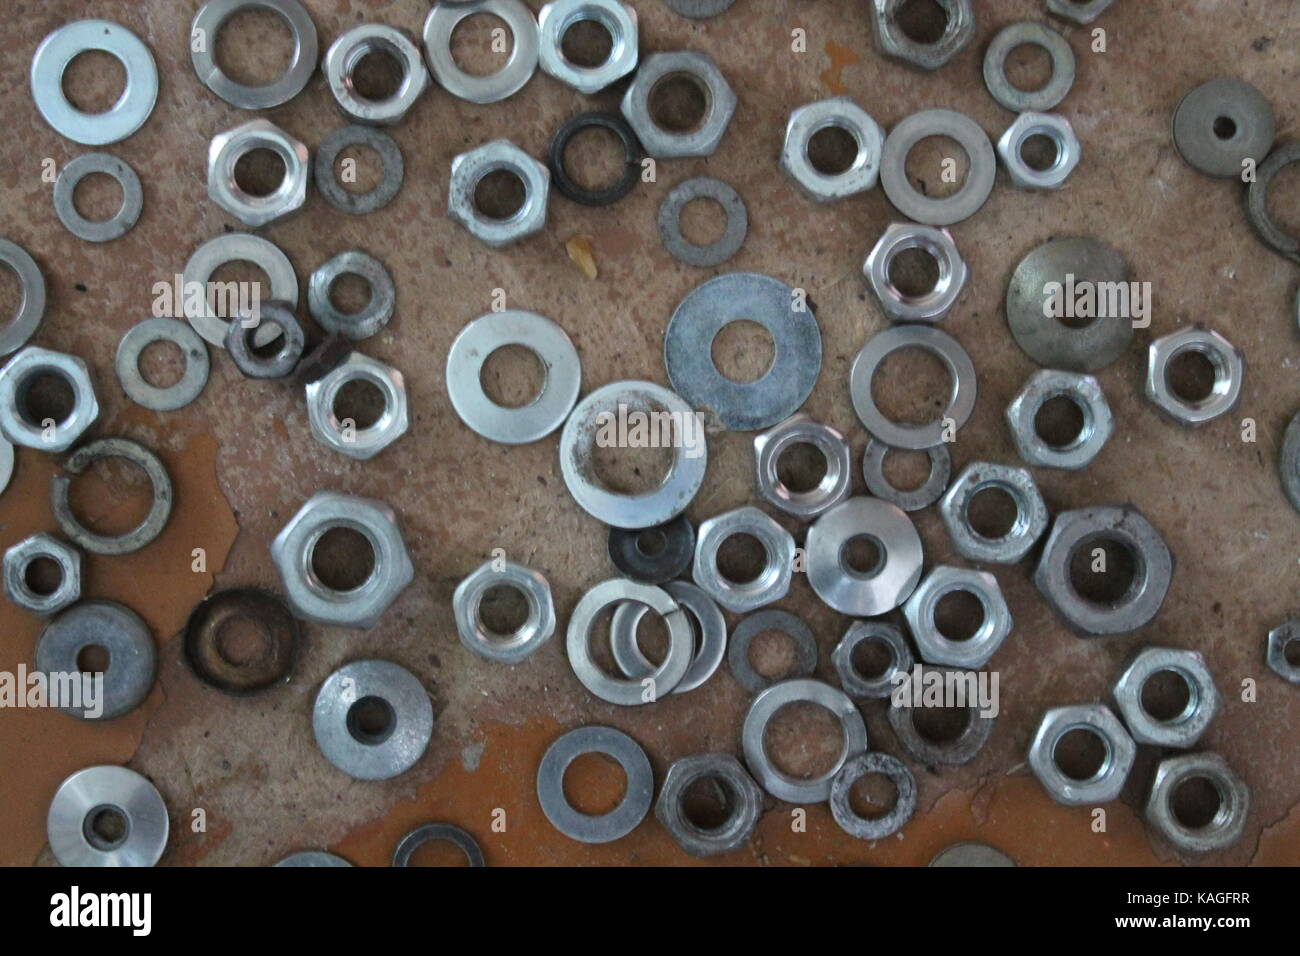 shine steel different shape and form nuts for help in repair - Stock Image